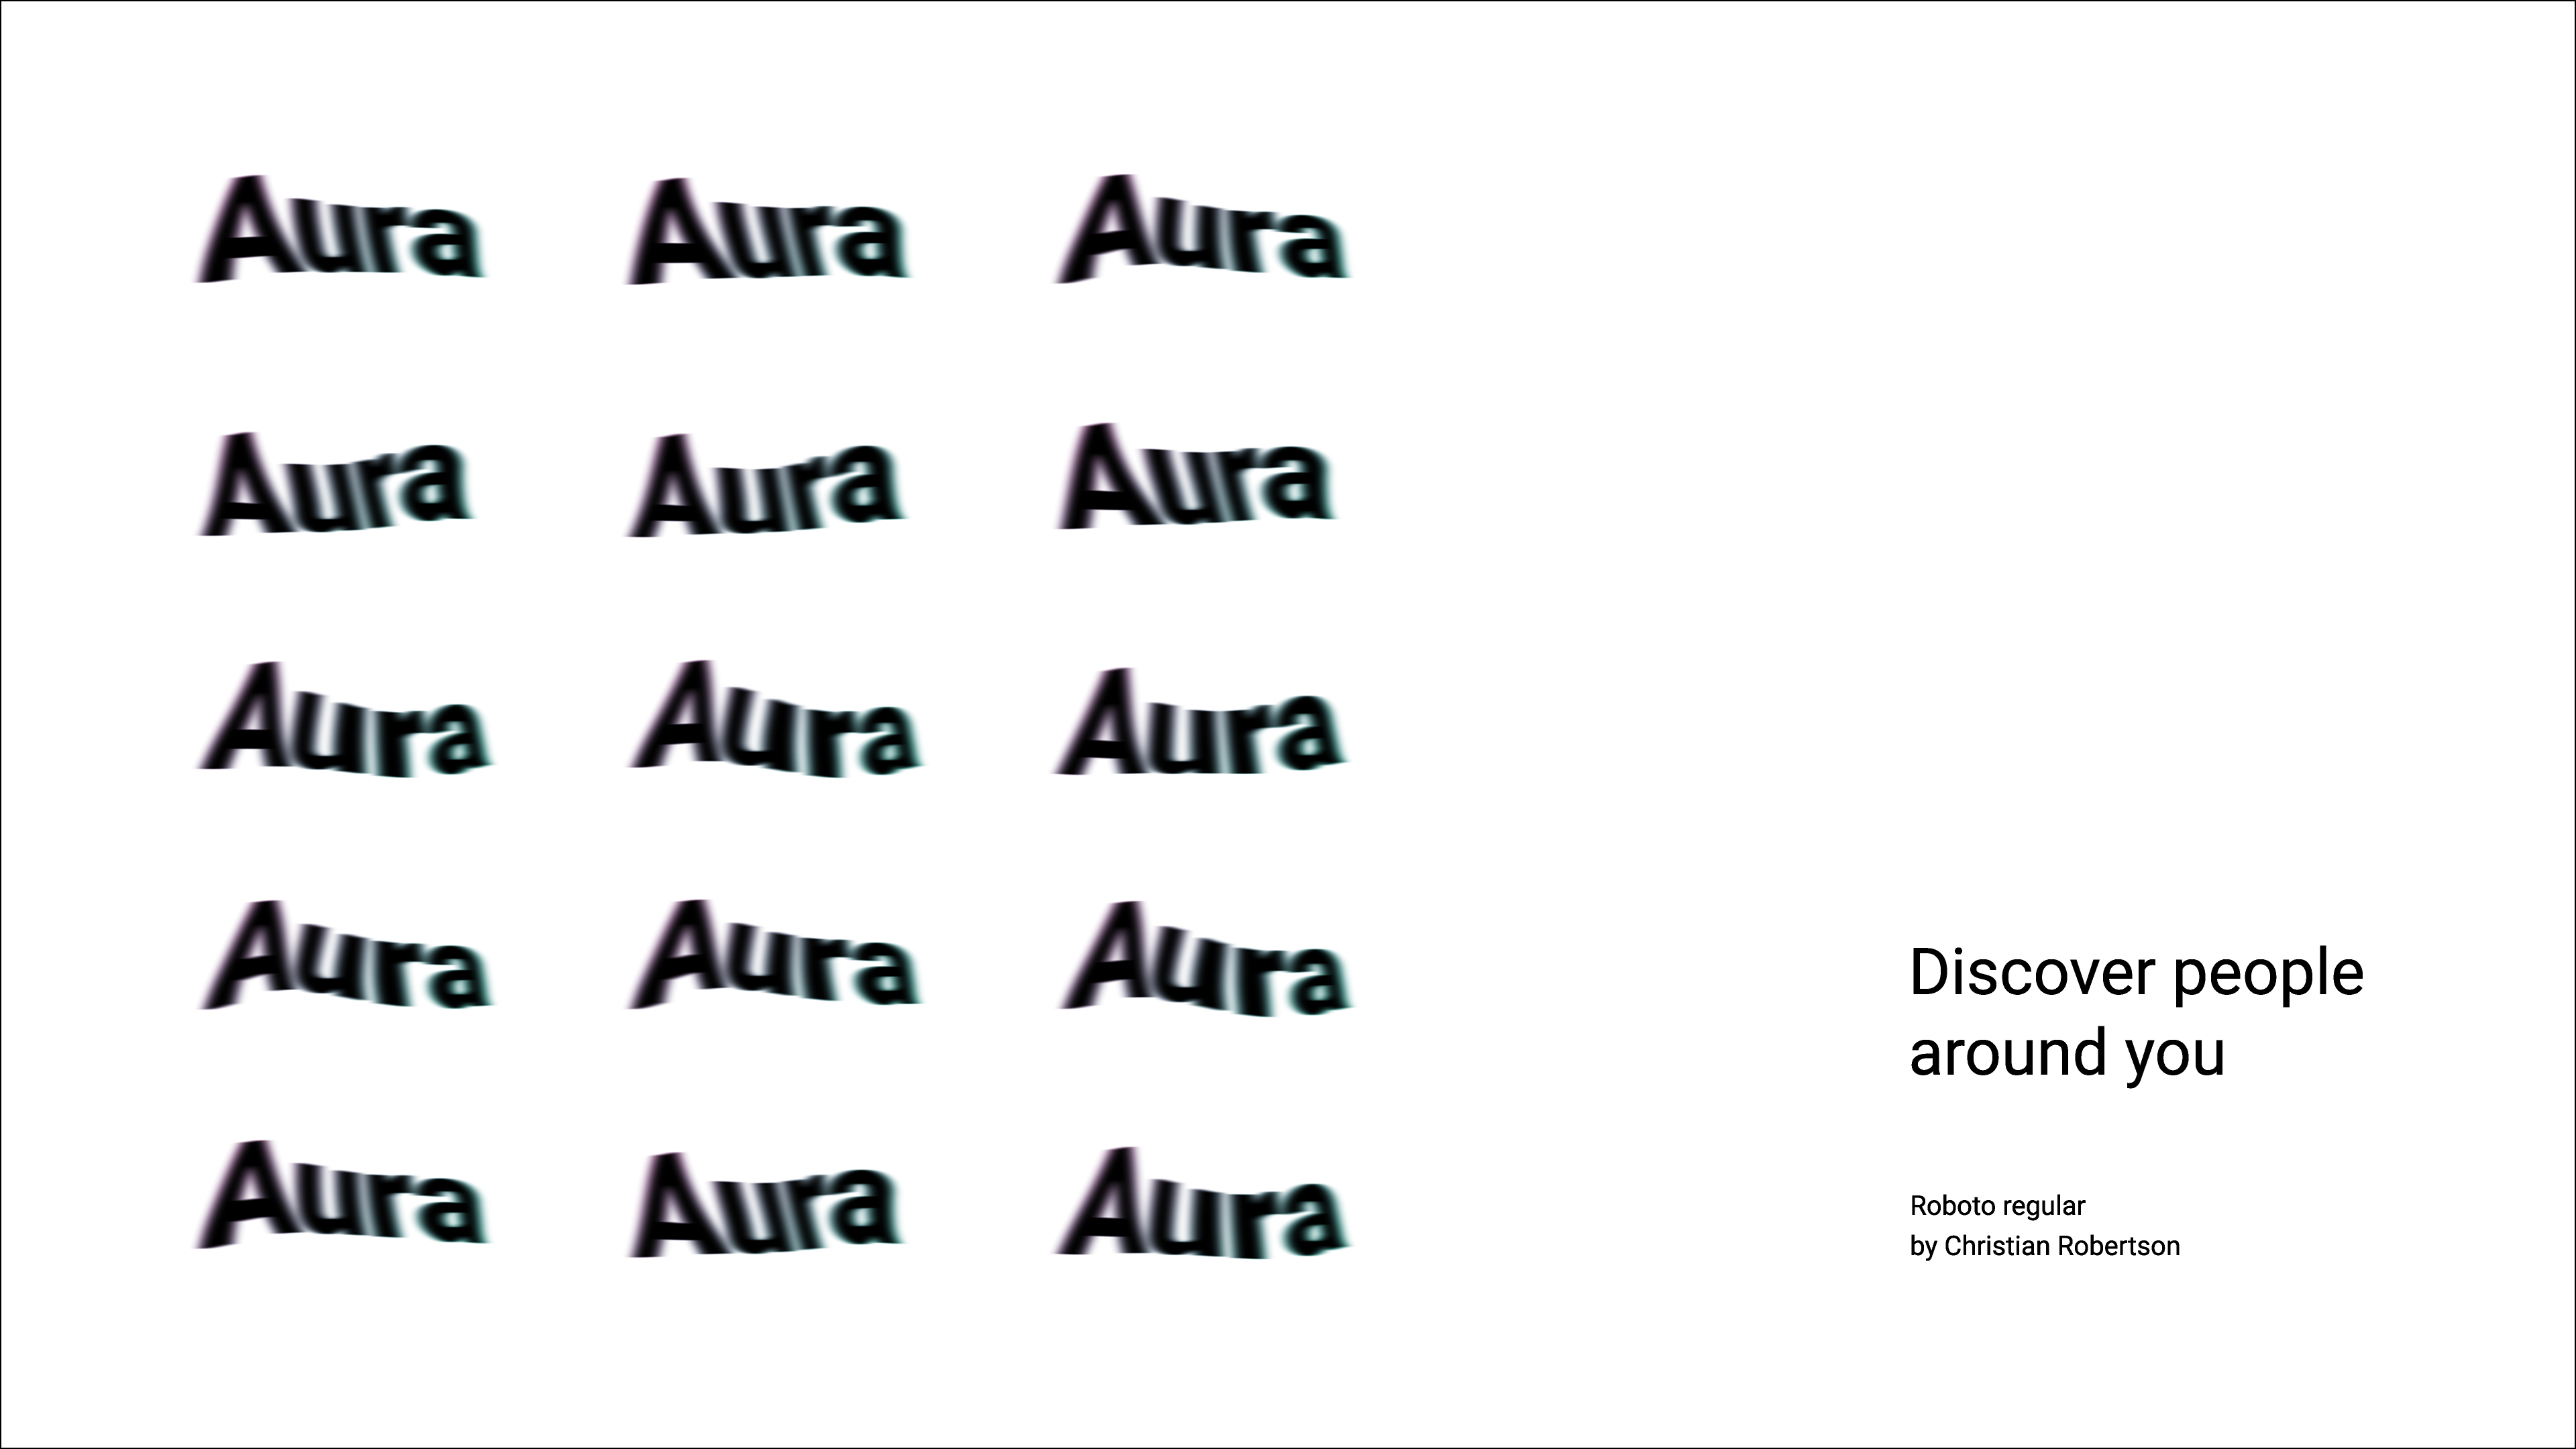 Aura - The Codeine Design